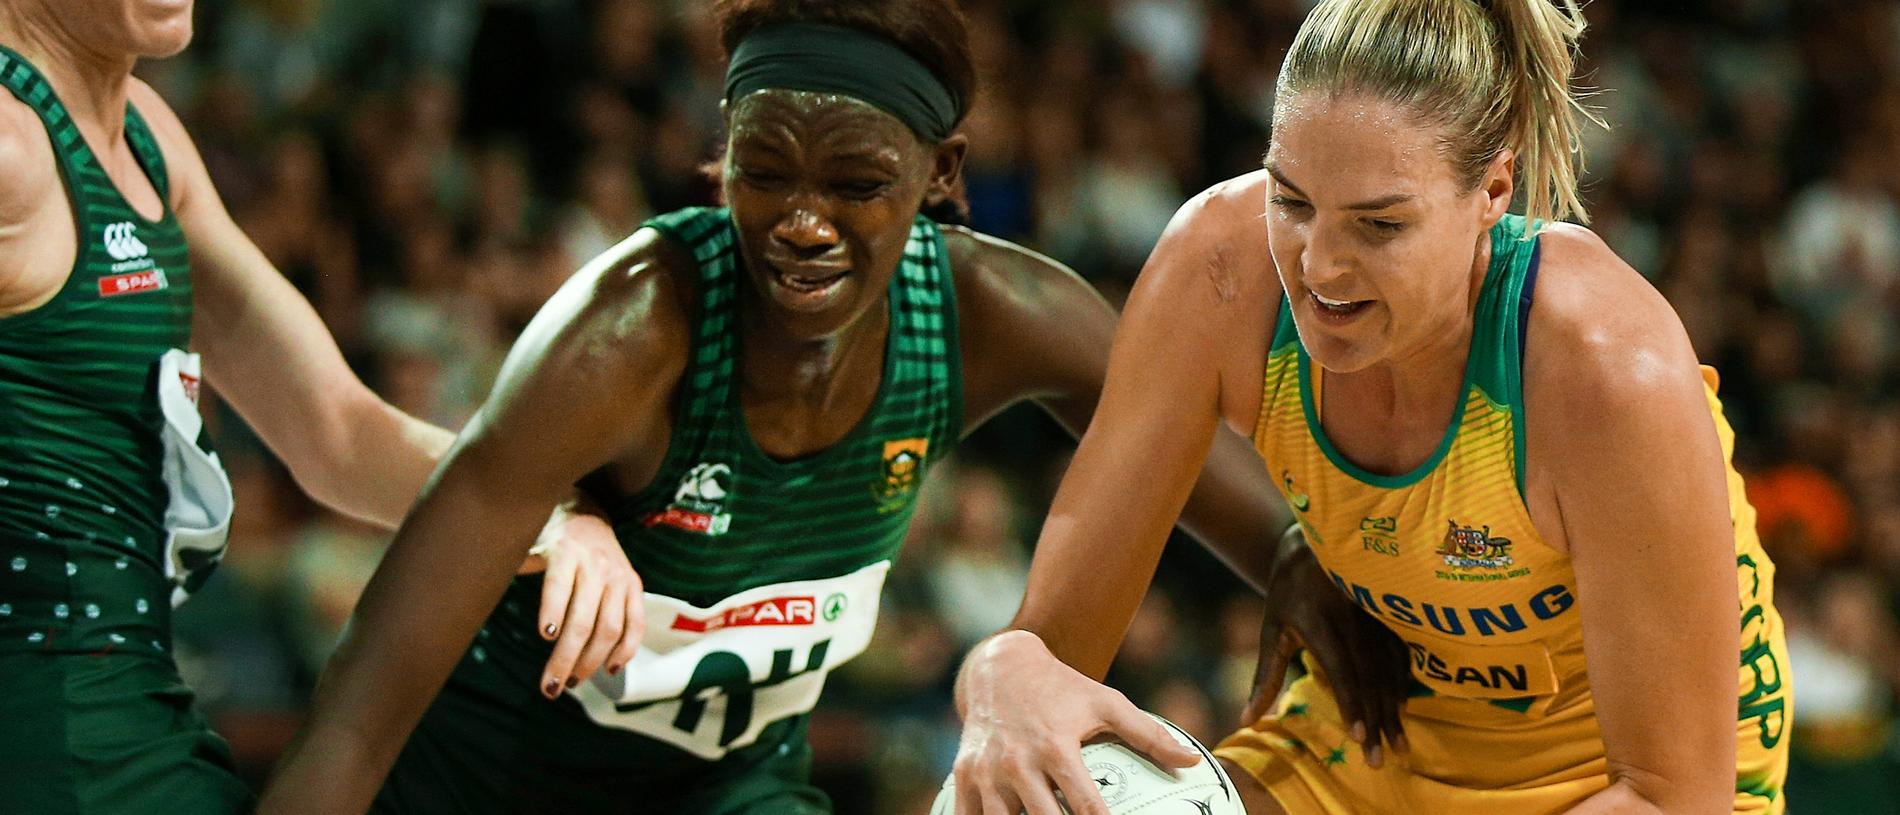 Phumza Maweni of the Proteas challenges Diamonds captain Caitlin Bassett during the Netball Quad Series match between the South African Proteas and the Australian Diamonds at Spark Arena in Auckland, New Zealand, Saturday, September 15, 2018. (AAP Image/David Rowland) NO ARCHIVING, EDITORIAL USE ONLY